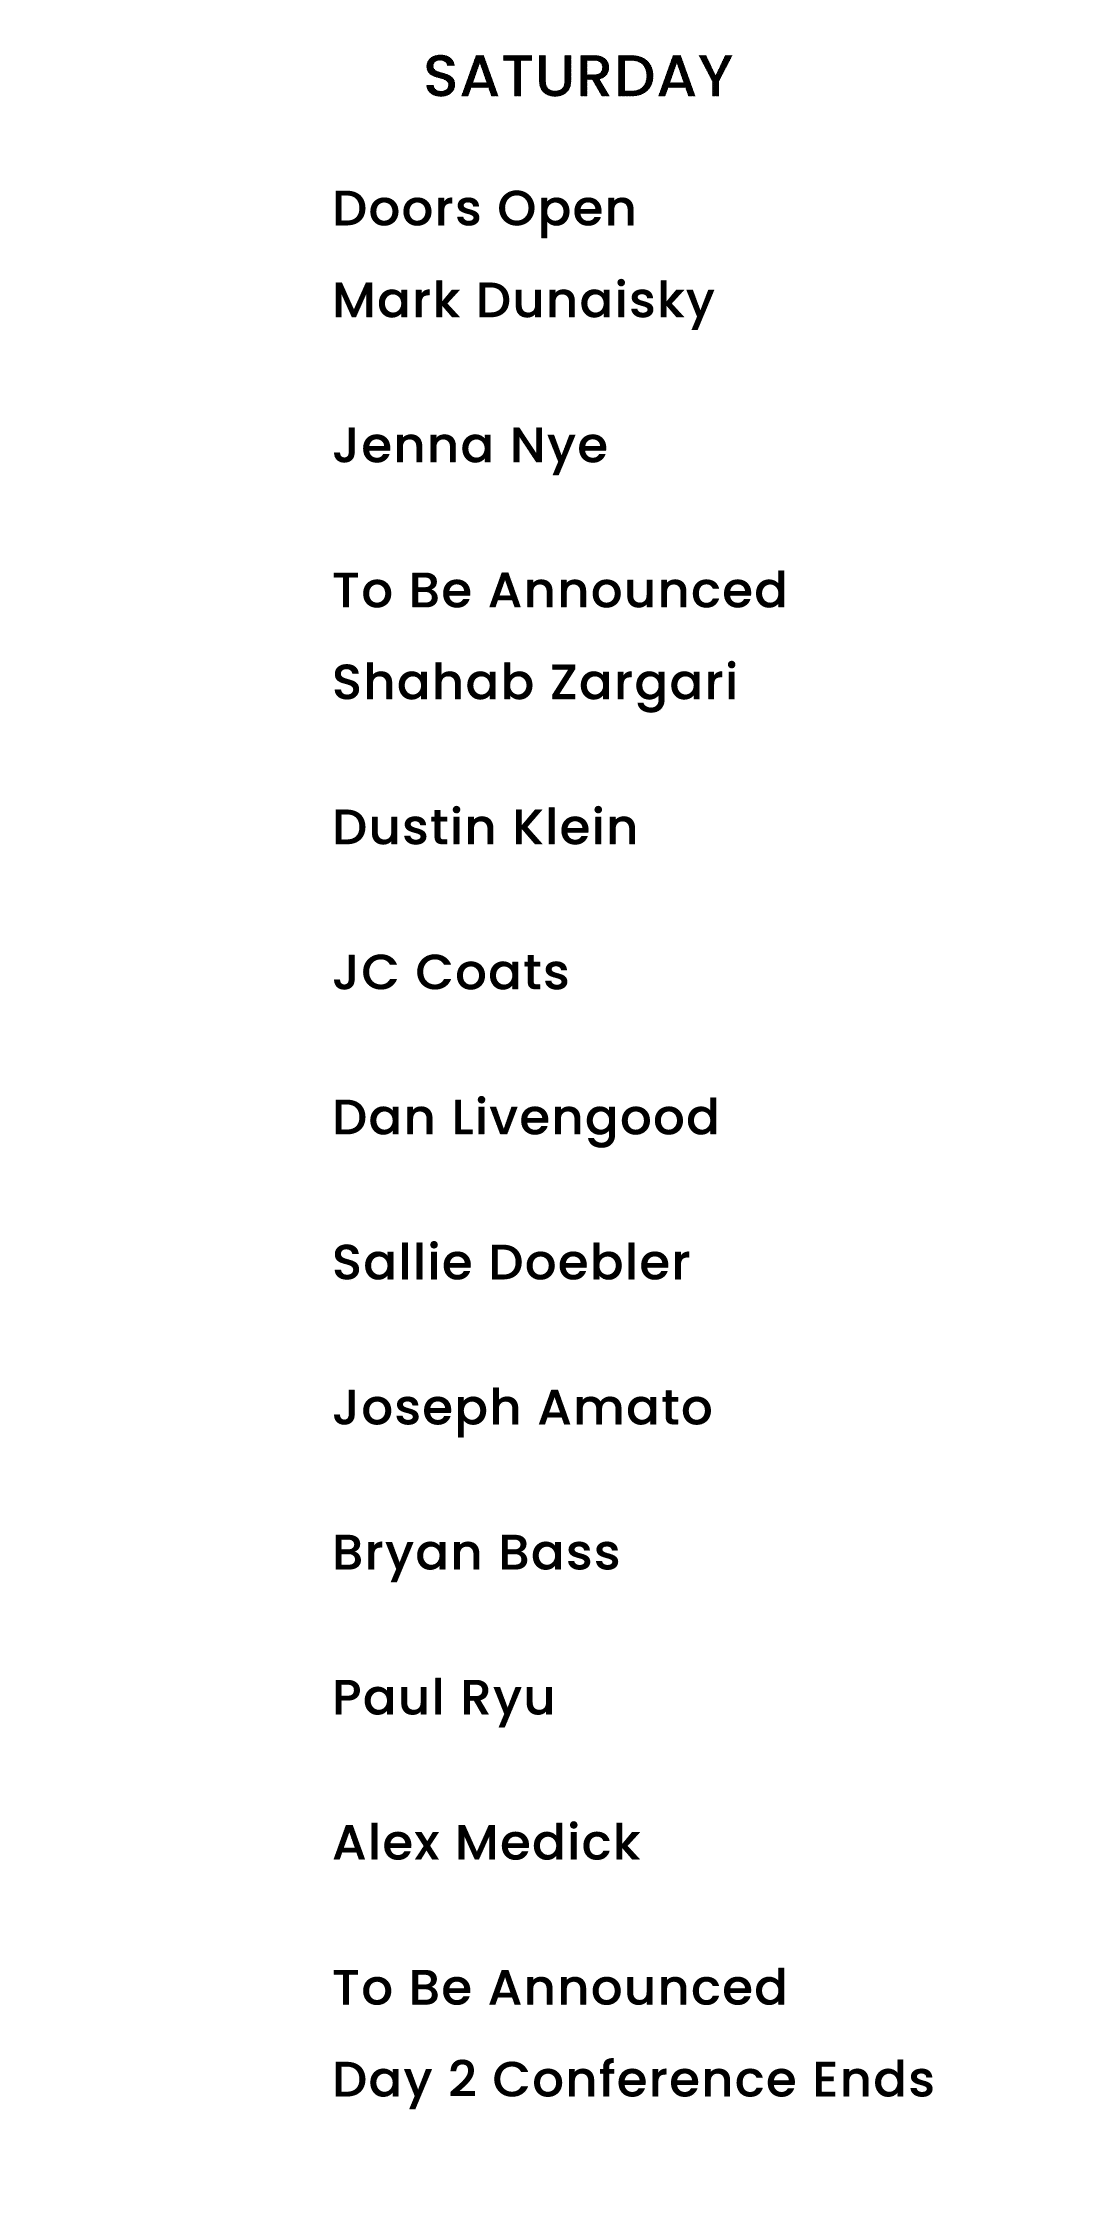 Saturday Speaker Schedule